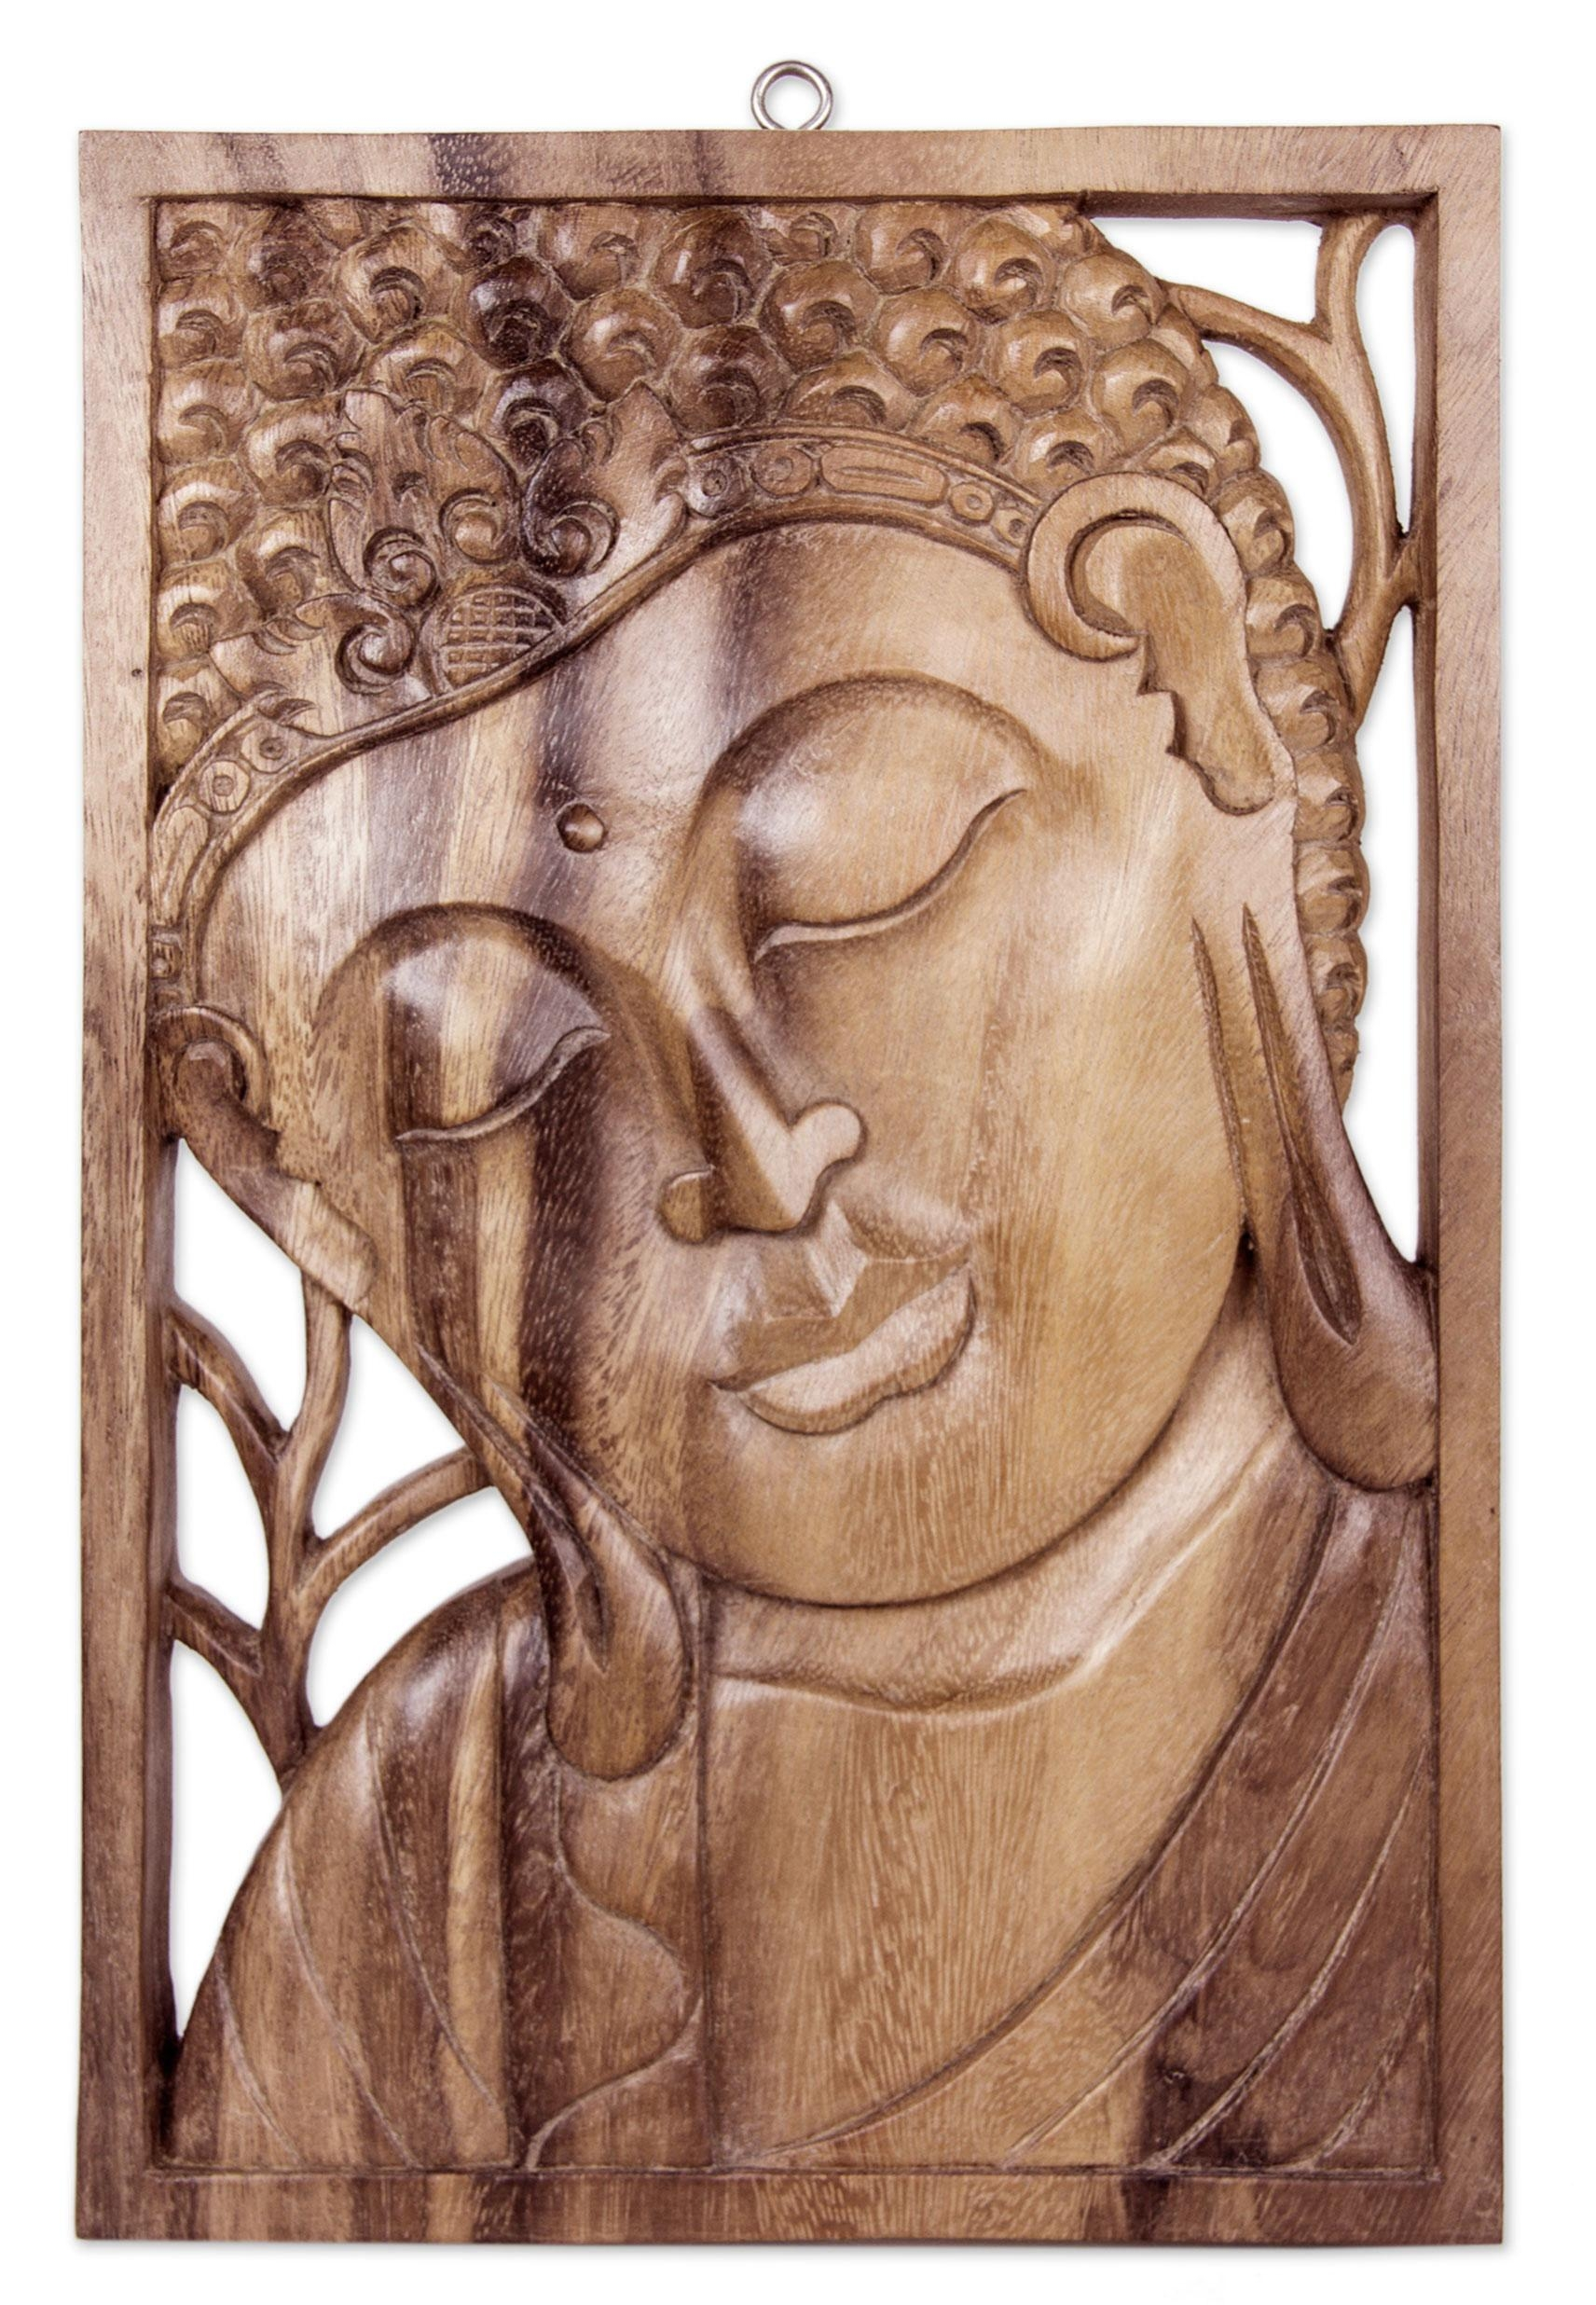 Zen Home Decor Ideas – Buddha Decor And Art | Novica Intended For Buddha Wooden Wall Art (Image 20 of 20)